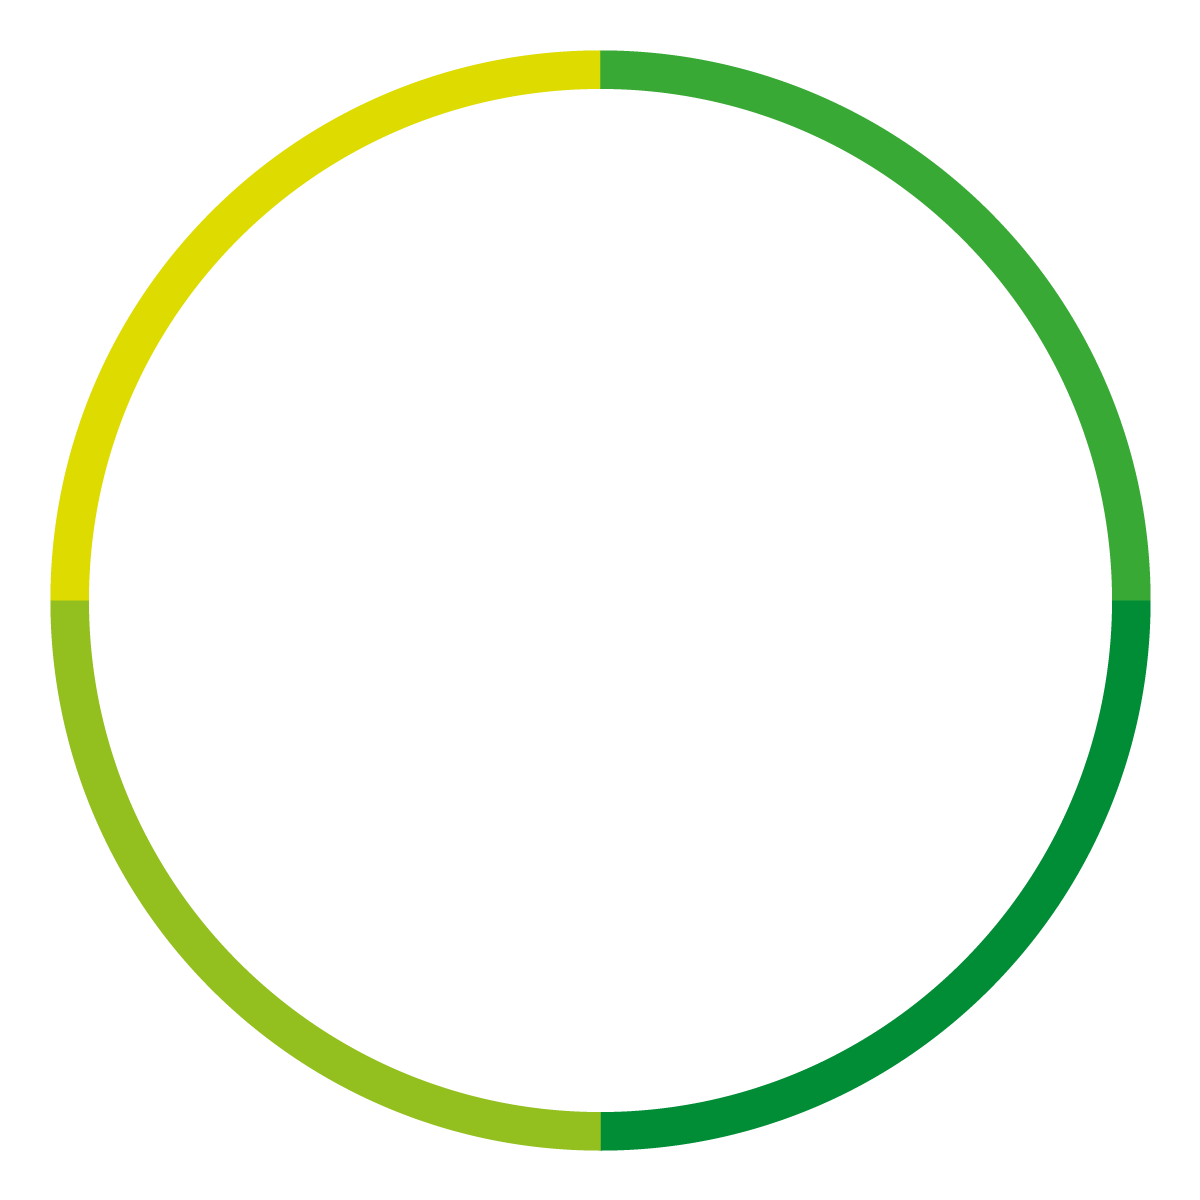 Low Carbon Energy - 293 Page 1 Rankings